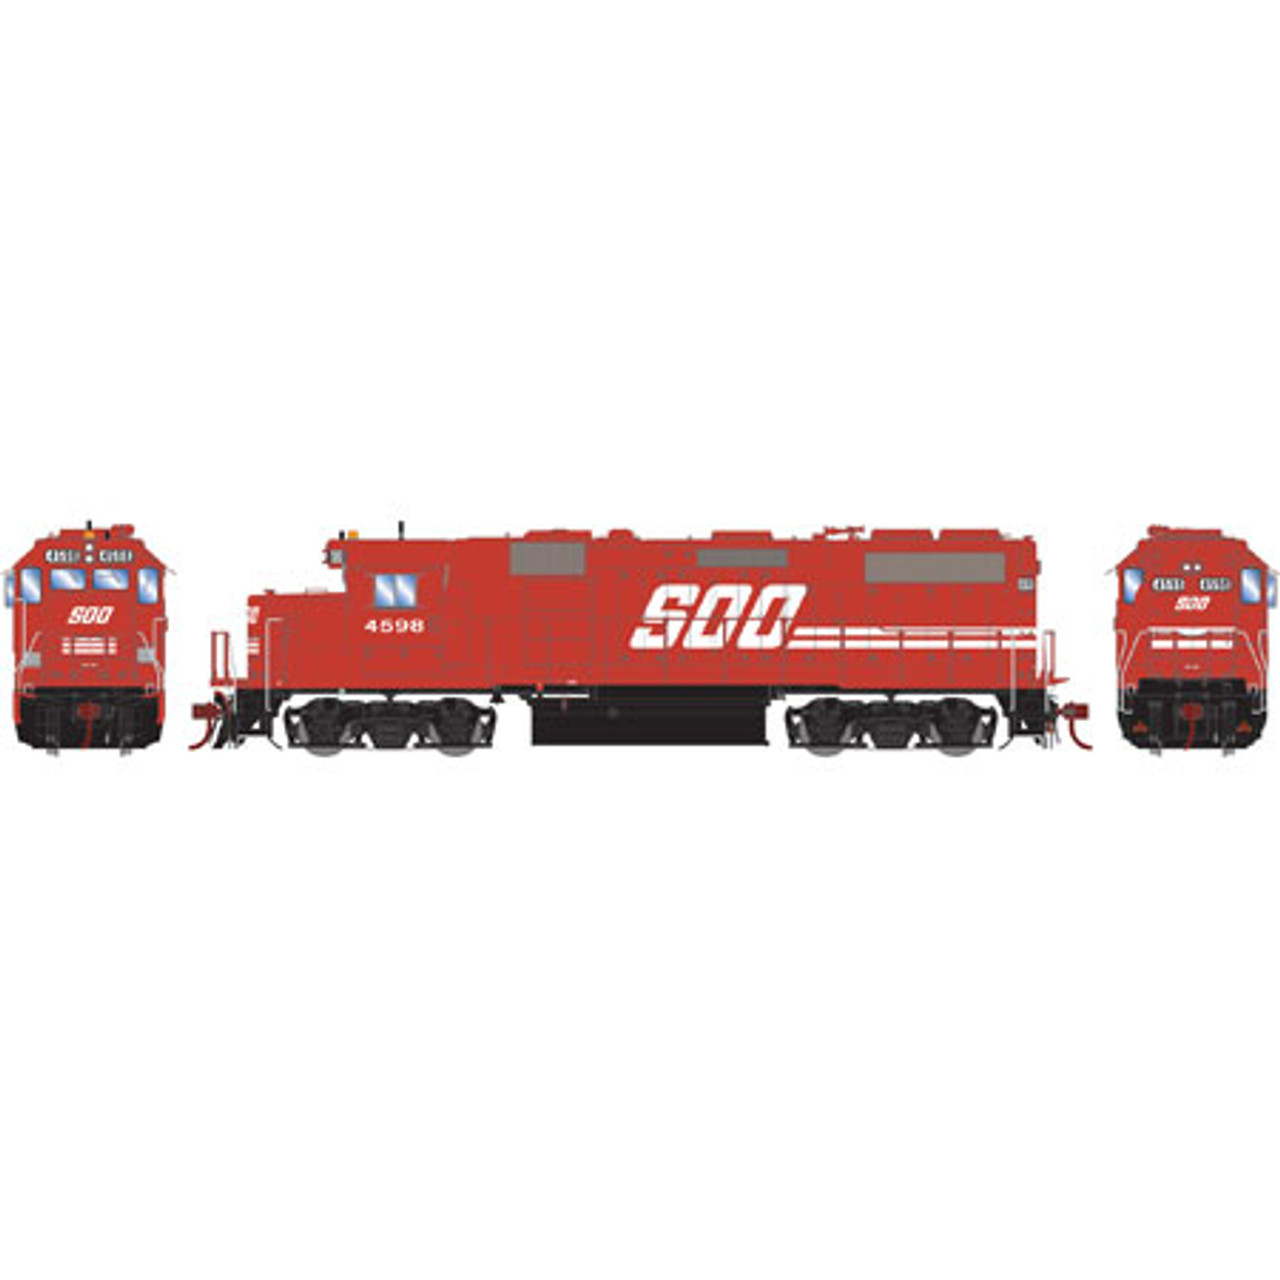 Athearn ATHG65499 GP39-2 Phase II Soo - Soo Line #4598 with DCC & Sound Tsunami2  (SCALE=HO)  Part #ATHG65499